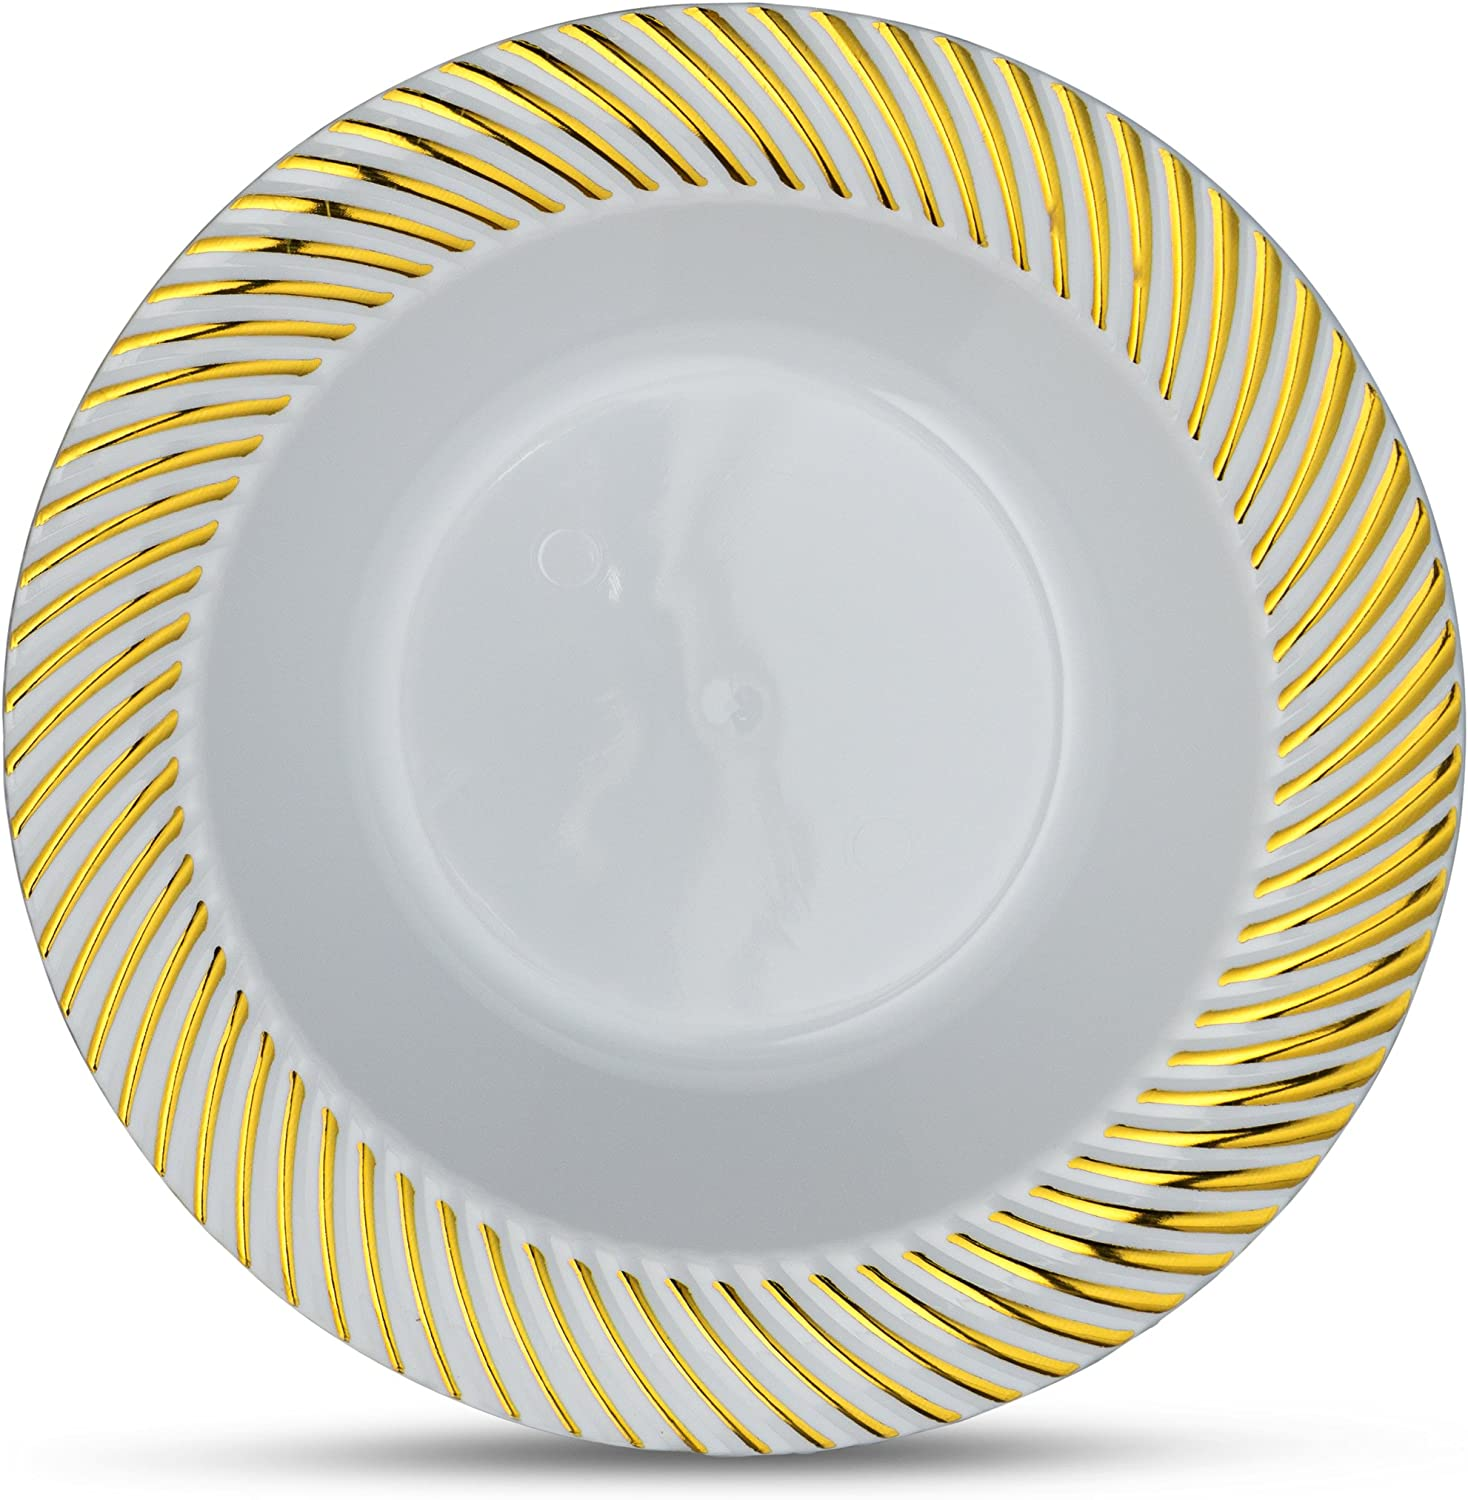 Laura Stein Designer Tableware Premium Heavyweight 5 Ounce White and Gold Rim Plastic Party /& Wedding Soup Bowls Curve Series Disposable Dishes Pack of 10 Dessert Bowls